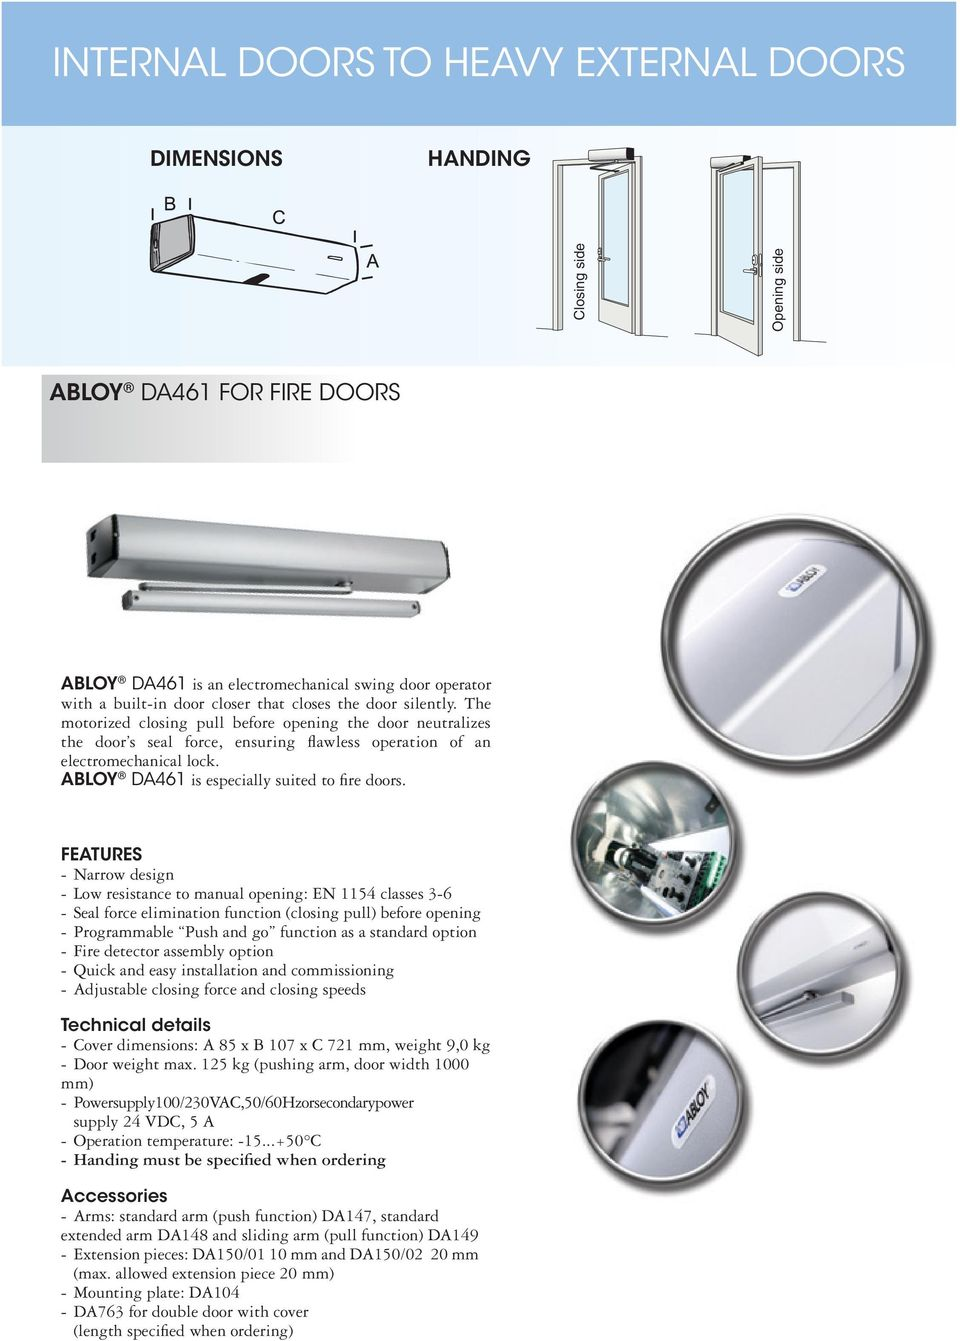 ABLOY DA461 is especially suited to fire doors.